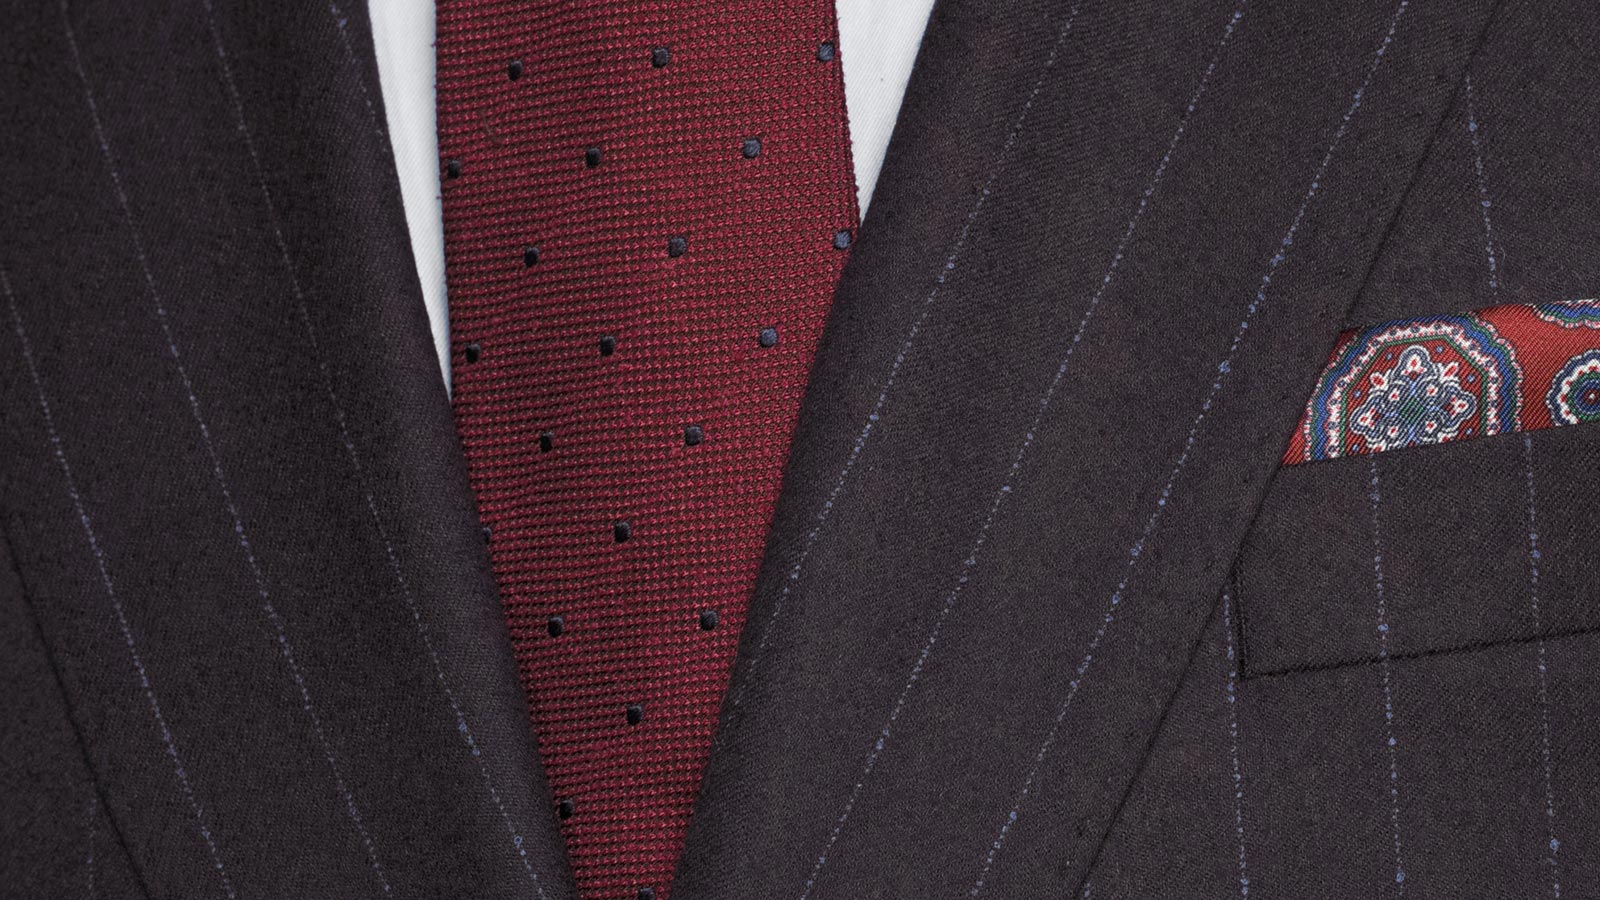 Blue Stripe Brown Suit - slider image 1